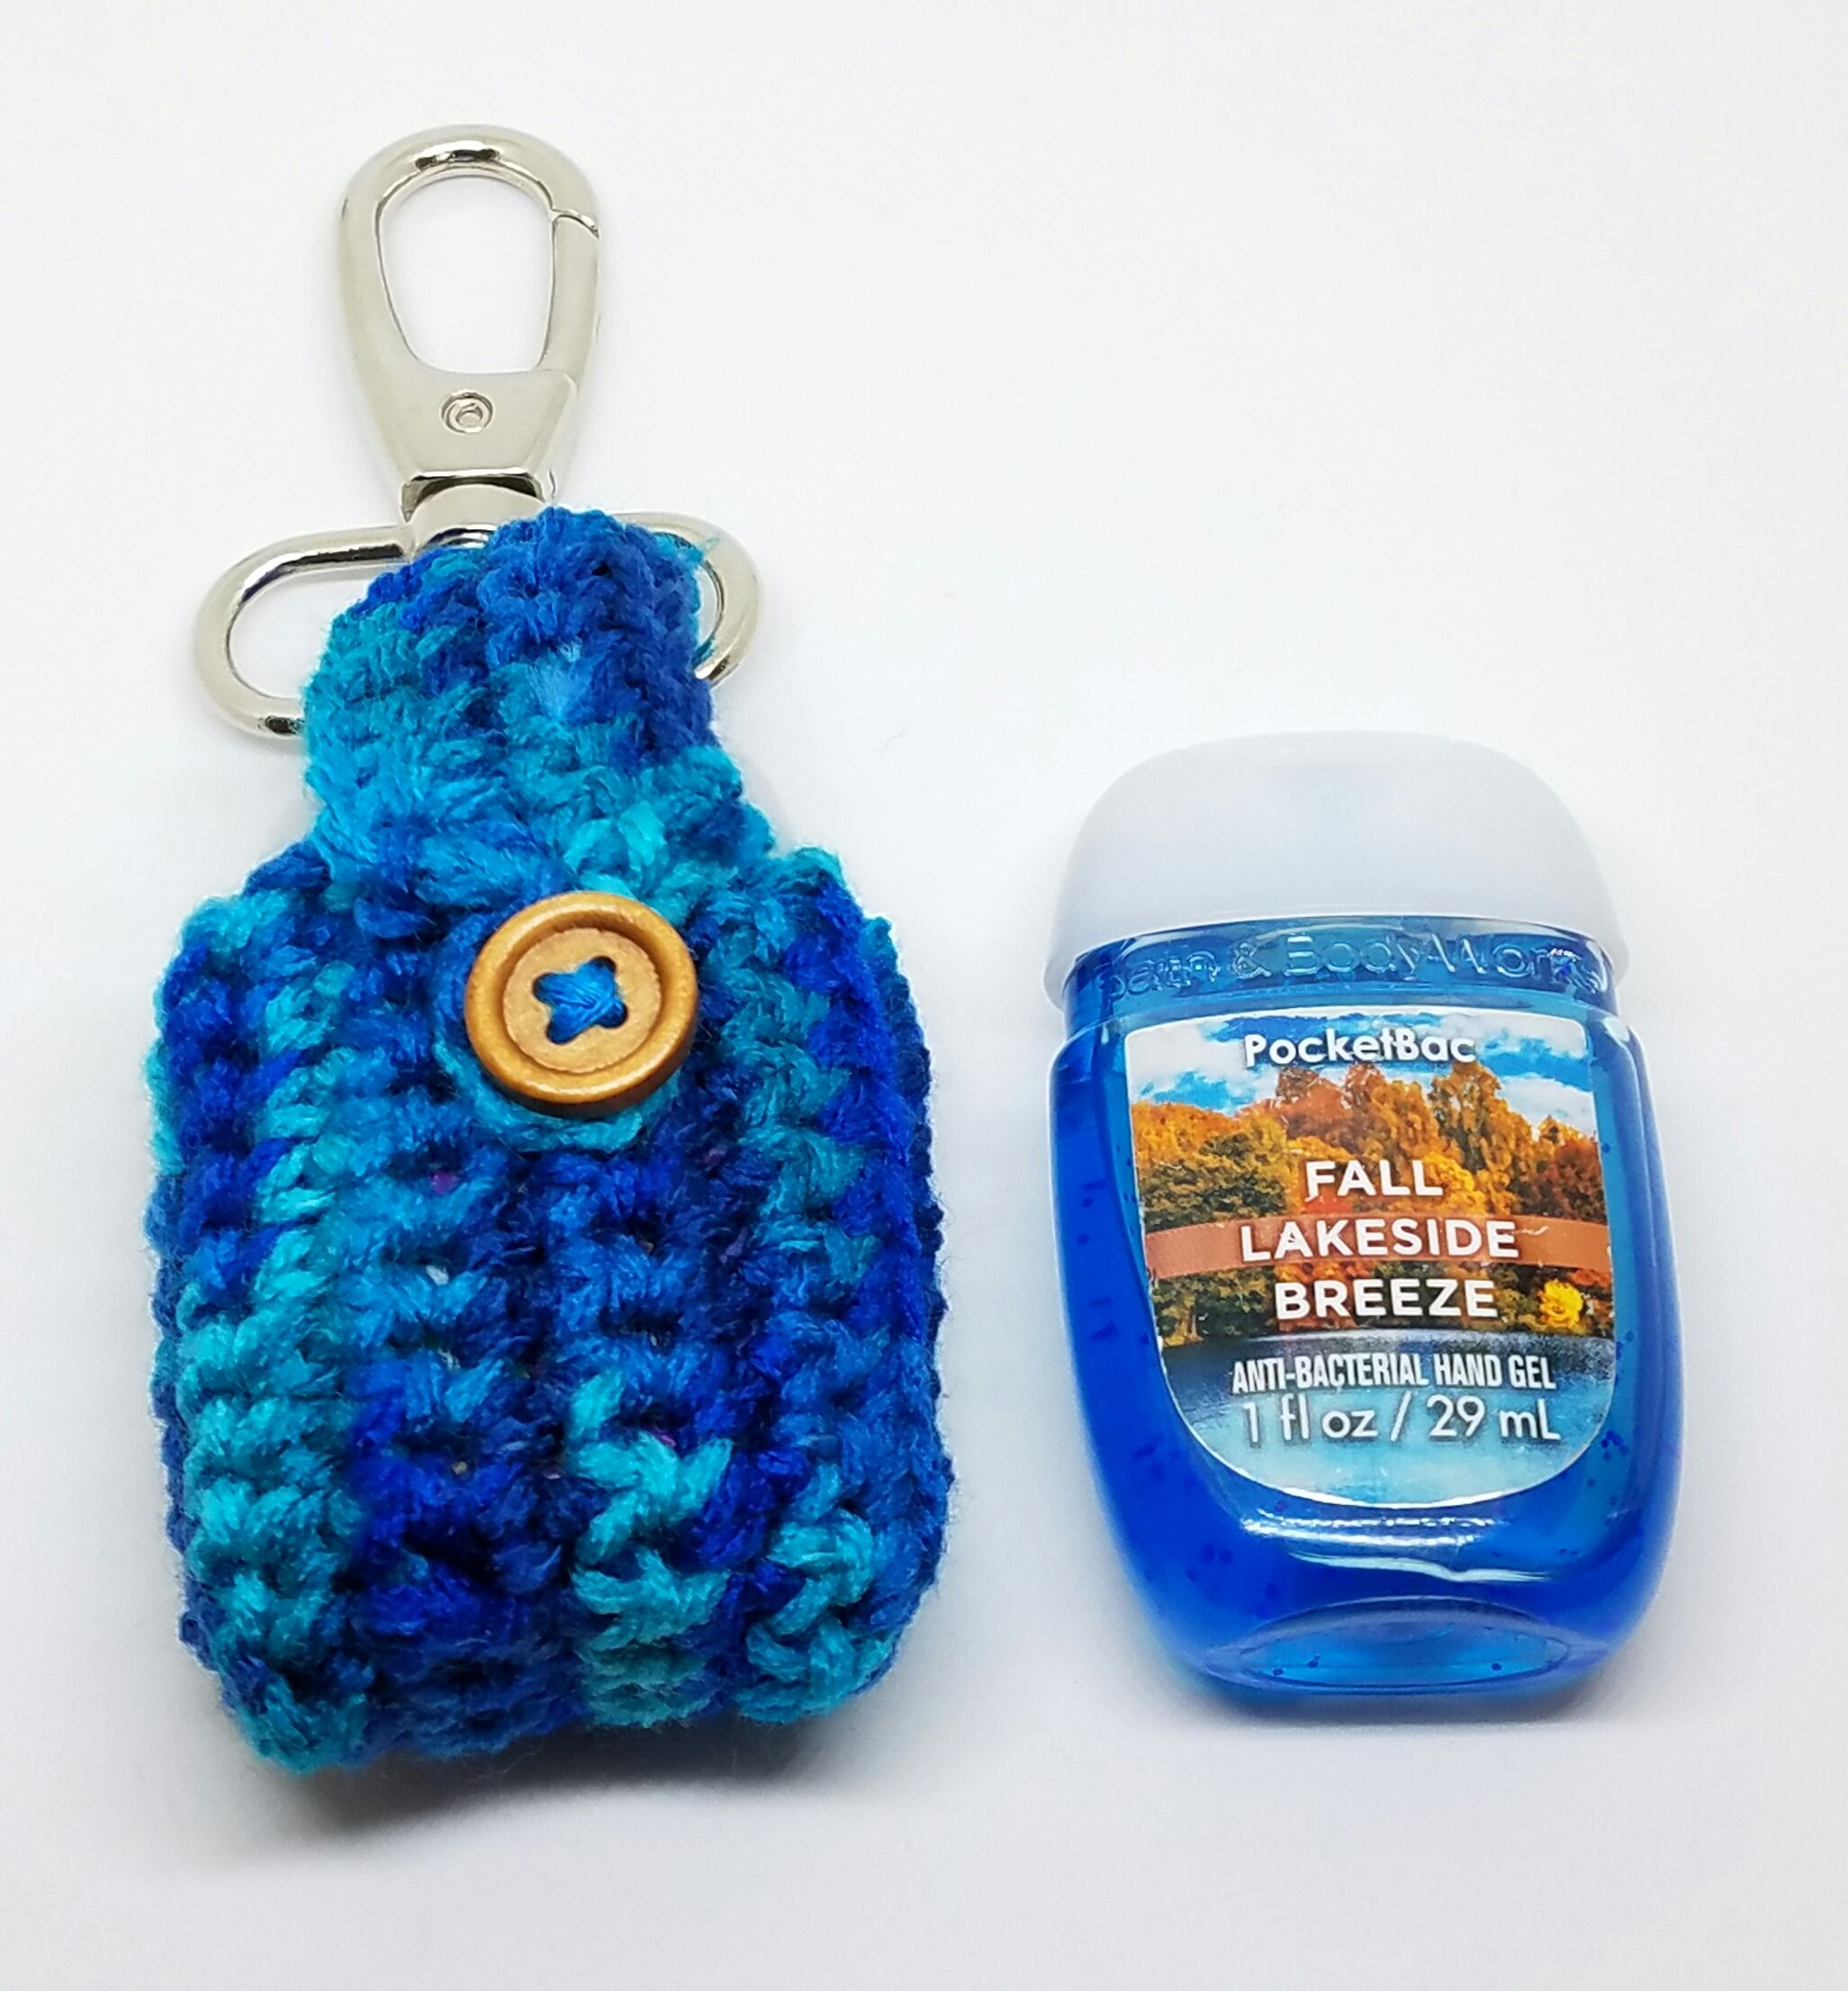 Crochet Peacock Hand Sanitizer Clip Sully Pocketbac Holder